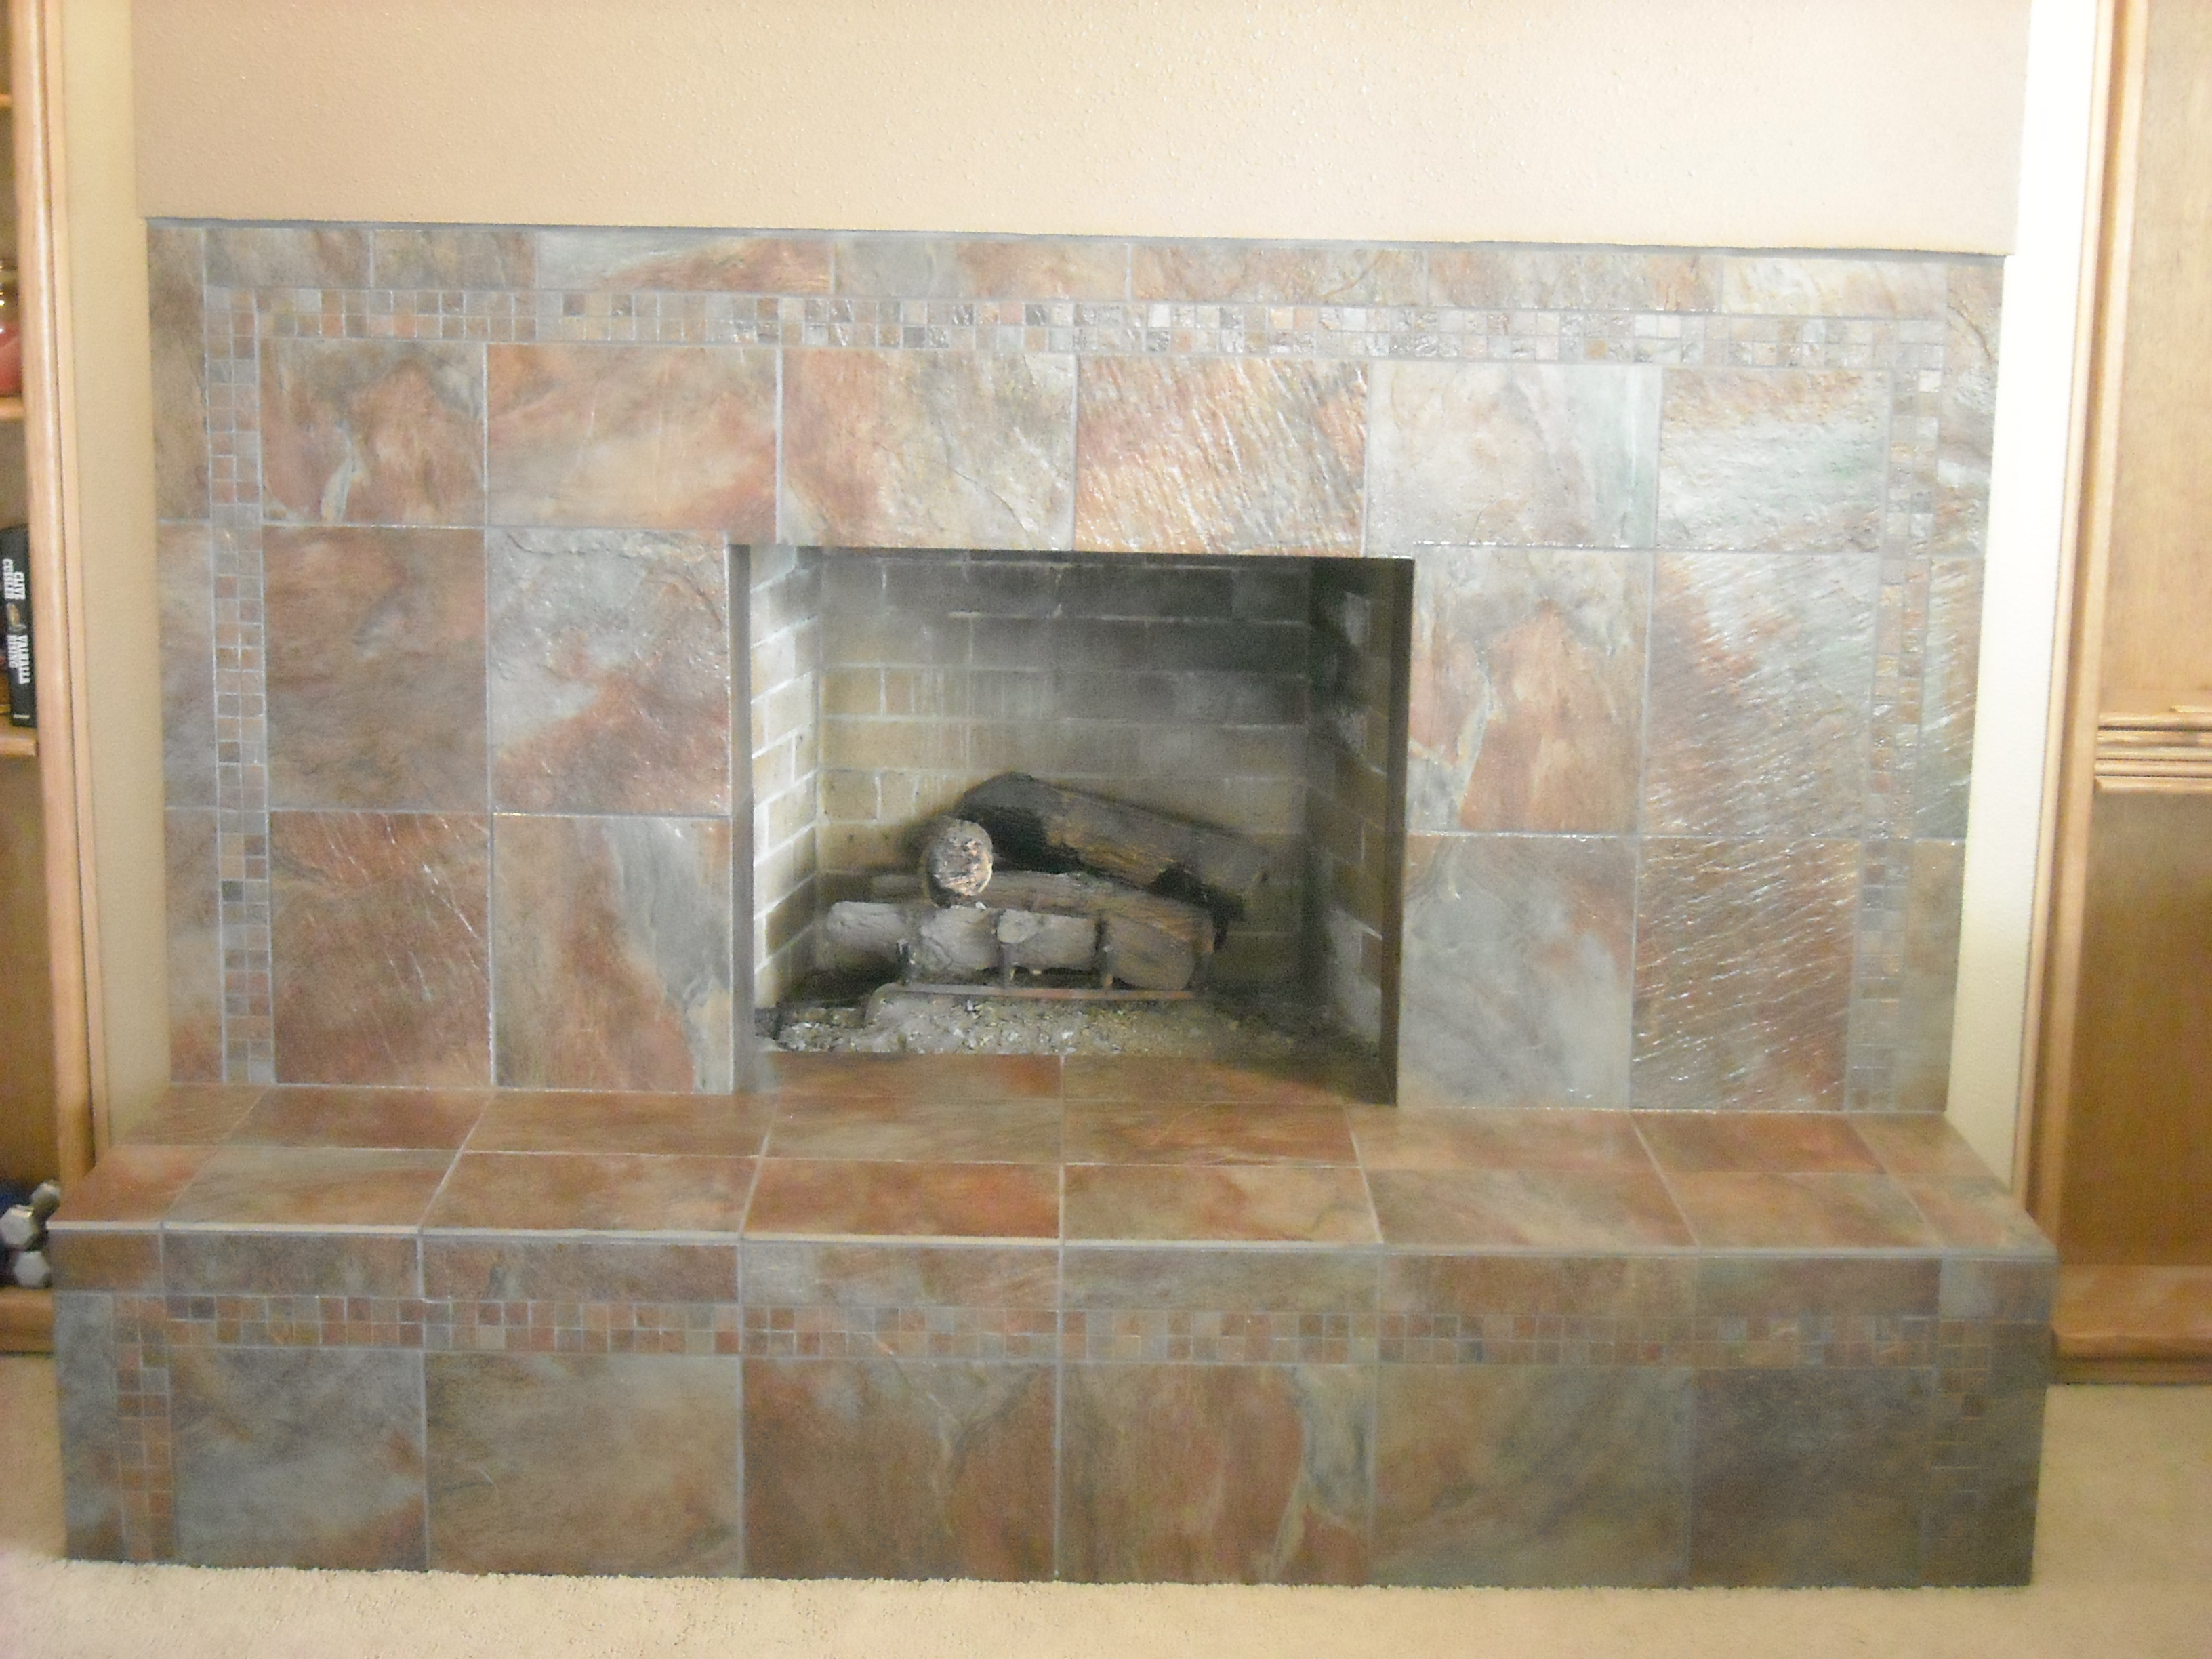 There Are Many Fireplace Tile Ideas I Have Seen A Few